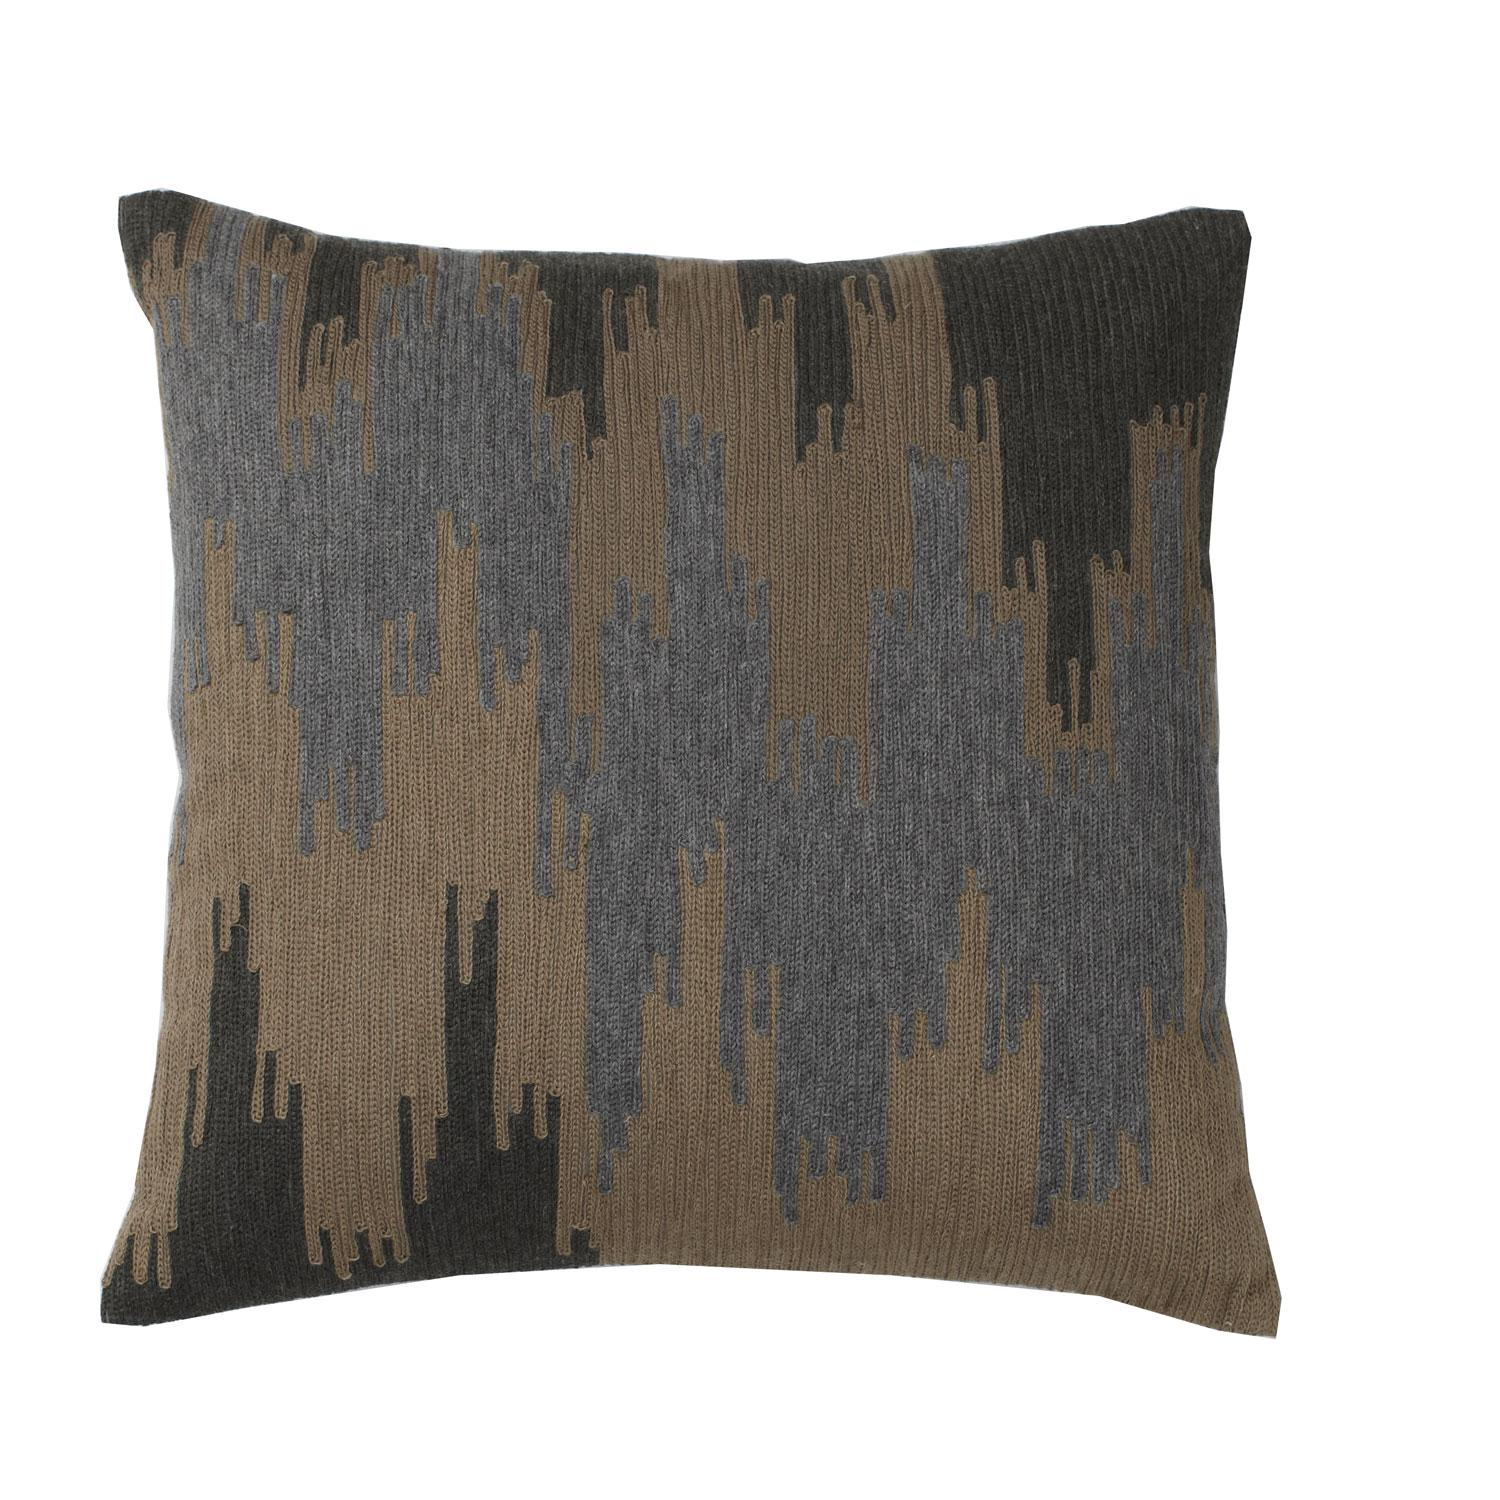 Throw Pillow Covers 18x18 Supplies : Embroidered Pillow Cover Ikat 18X18 Ikat Type Od60-18X18-Ikat U.S. Supply : USAFurnishingsDepot.com